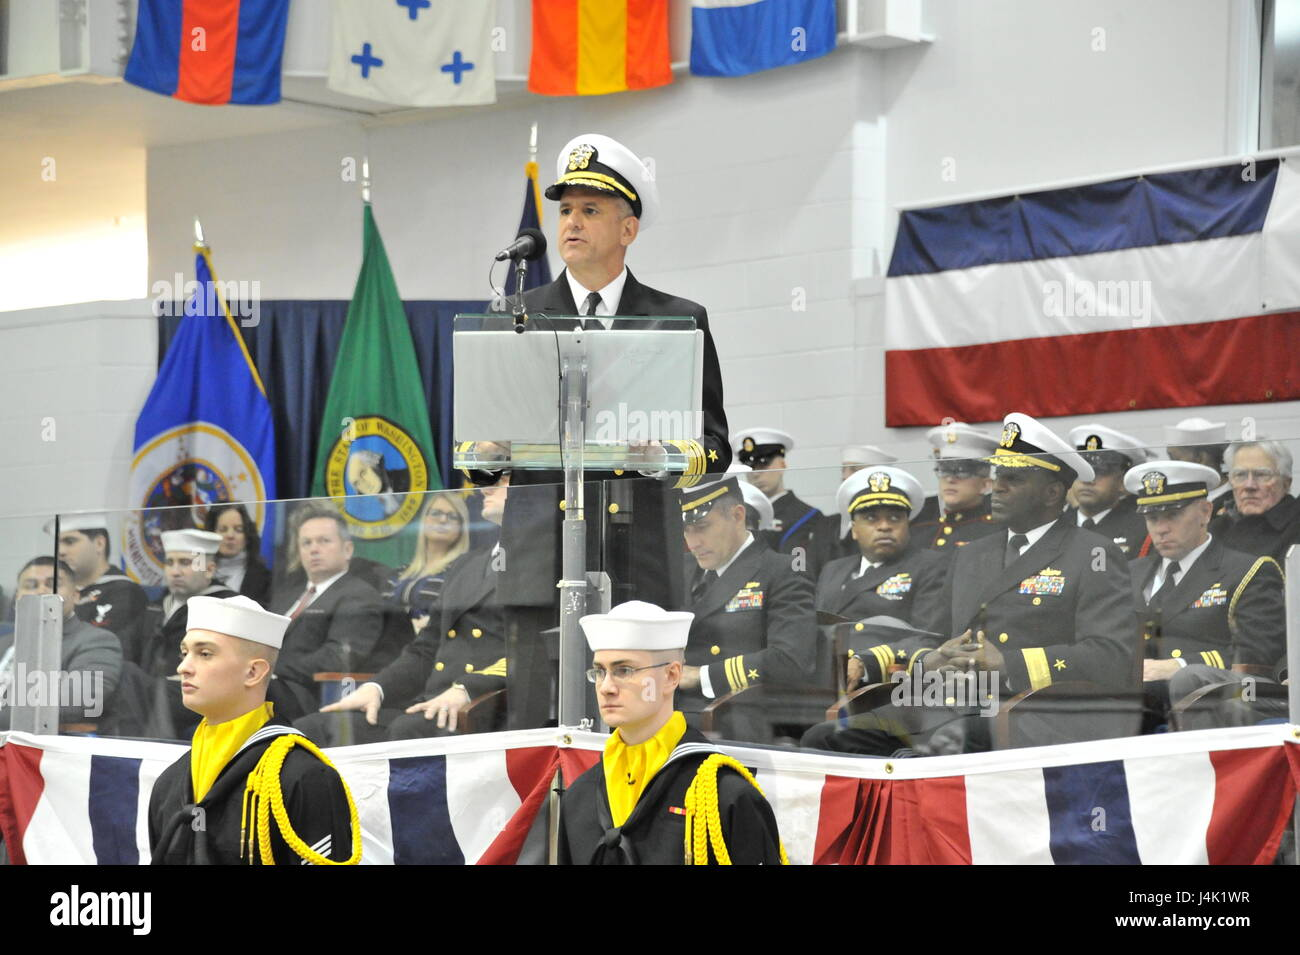 161216-N-CM124-353  GREAT LAKES, Ill. (Dec. 16, 2016) Chief of Naval Personnel Robert P. Burke speaks to the guests - Stock Image